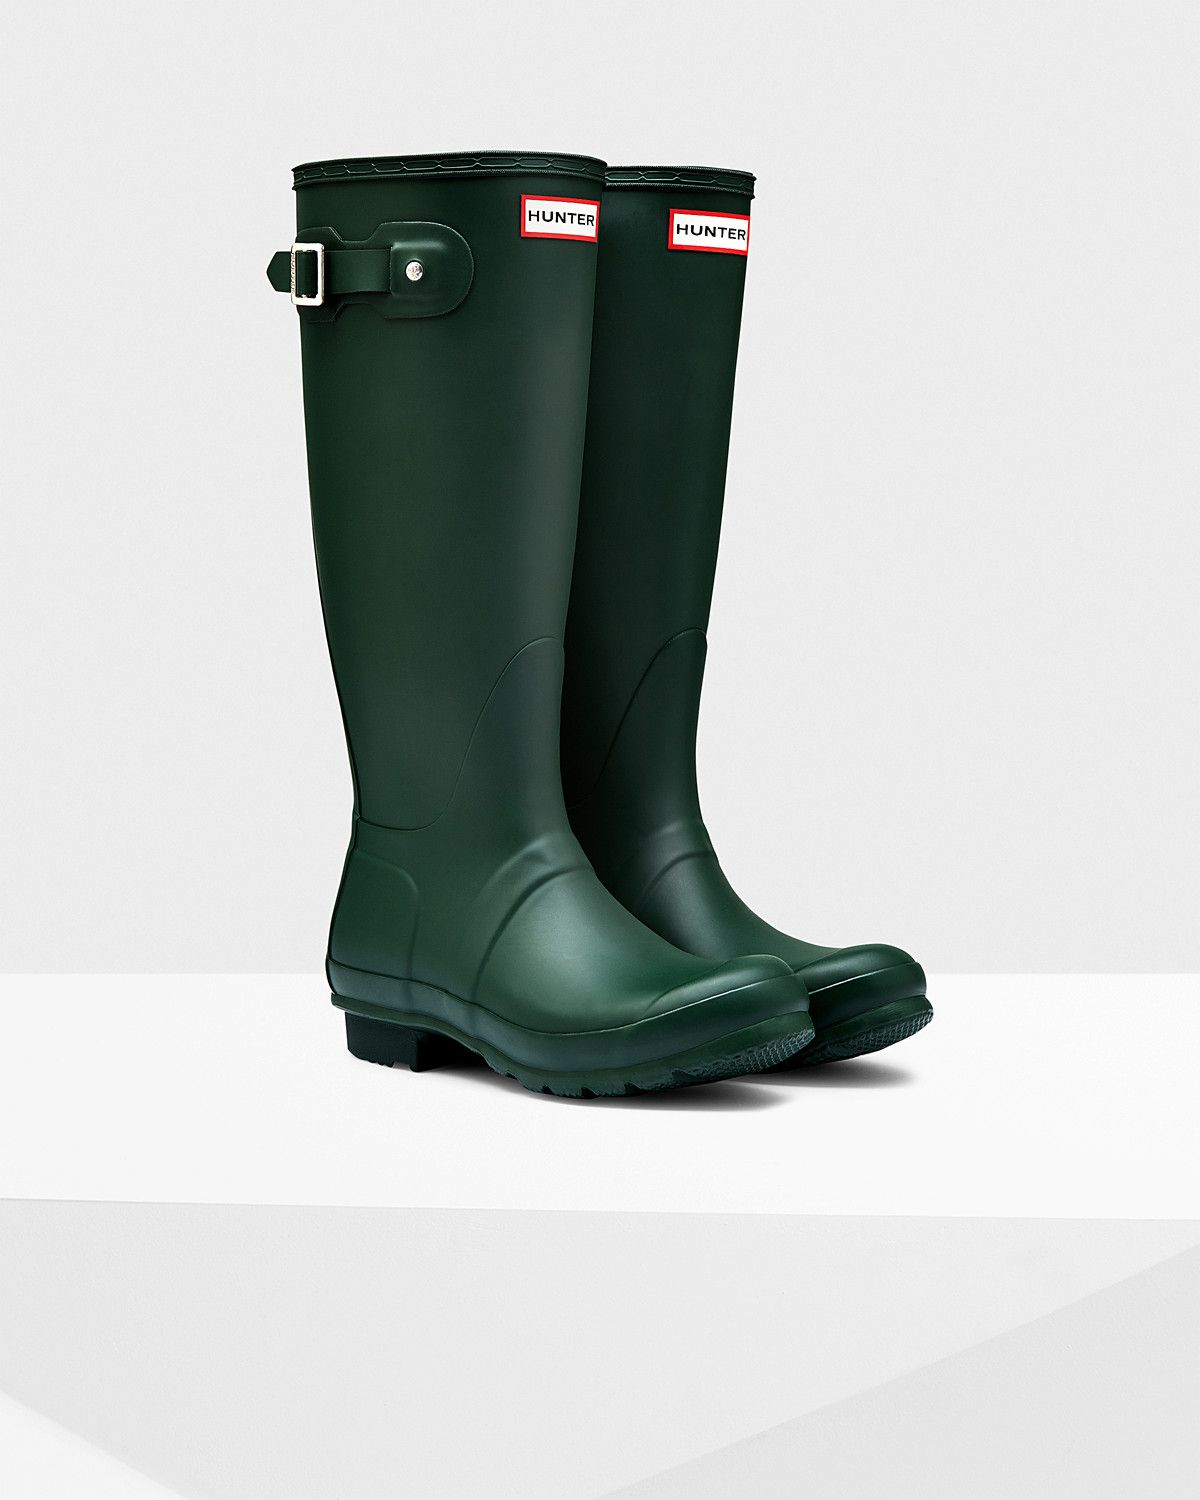 Buy Women's Original Tall Wellington Boots from the Official Hunter Boot  Site with Free UK Delivery* and Returns.